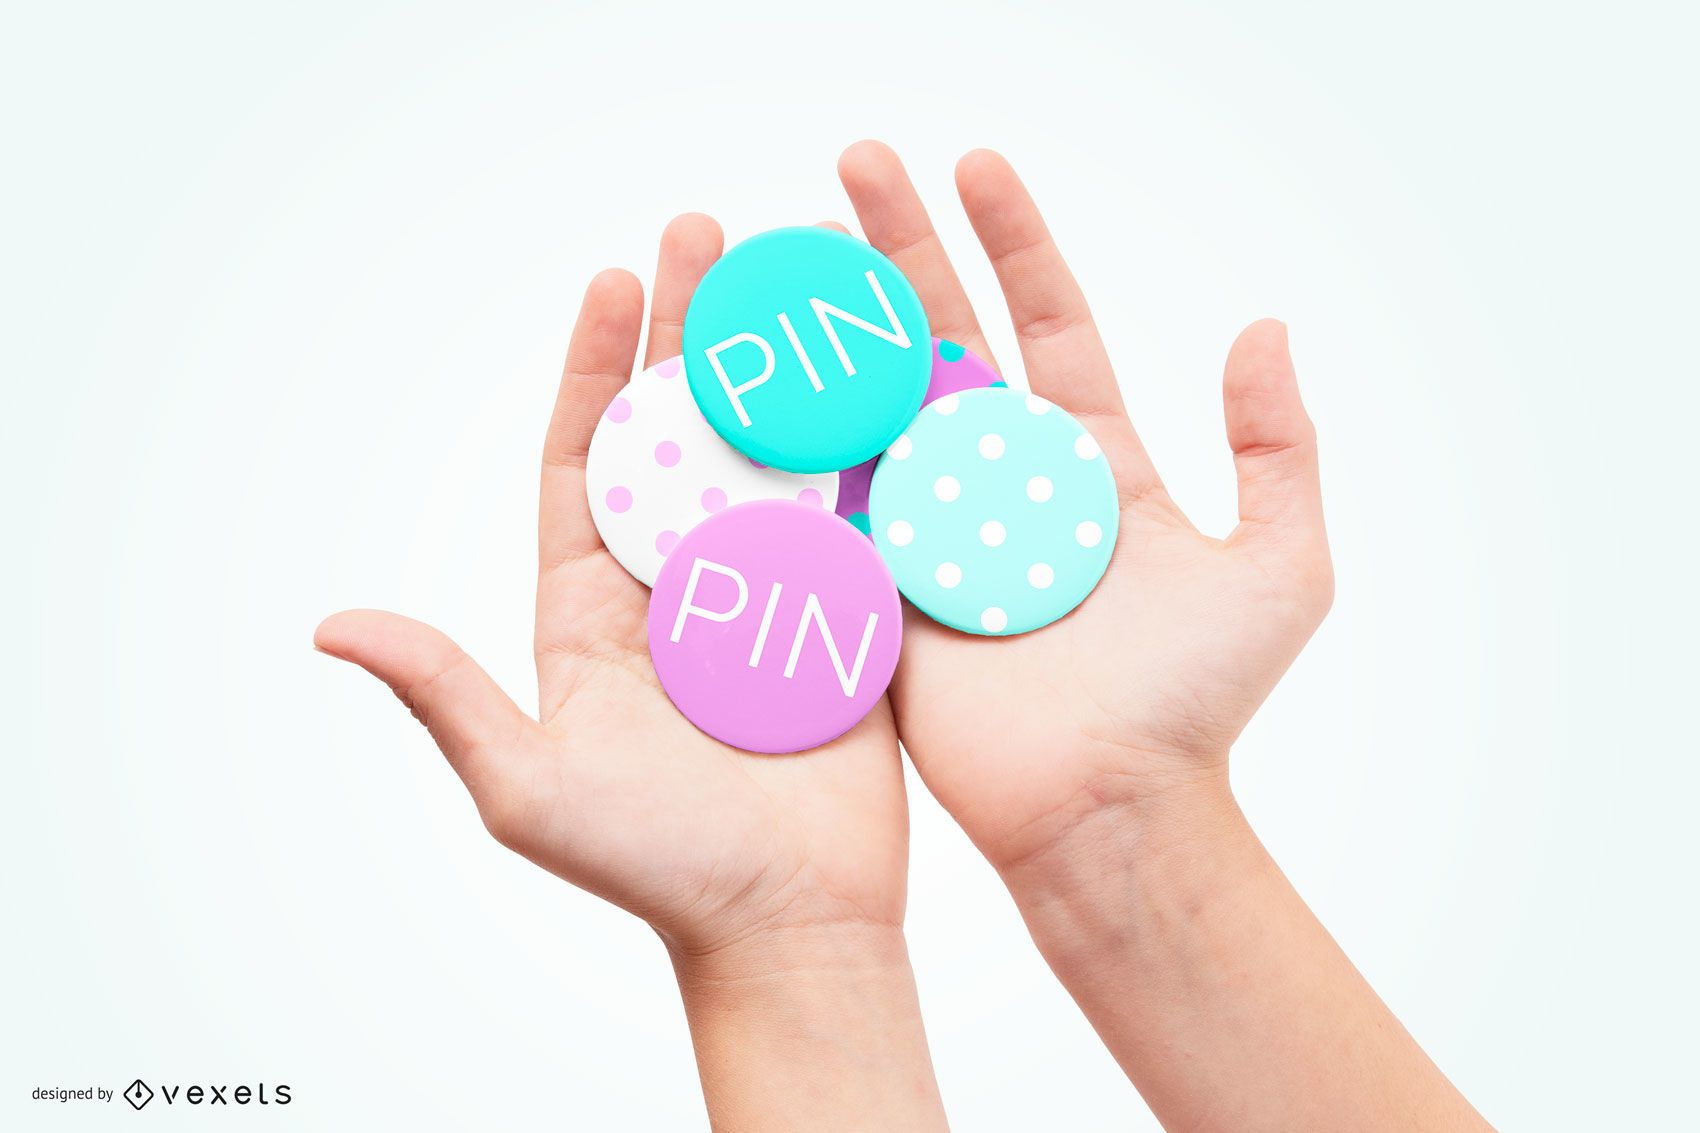 Hands Holding Pins Object Mockup